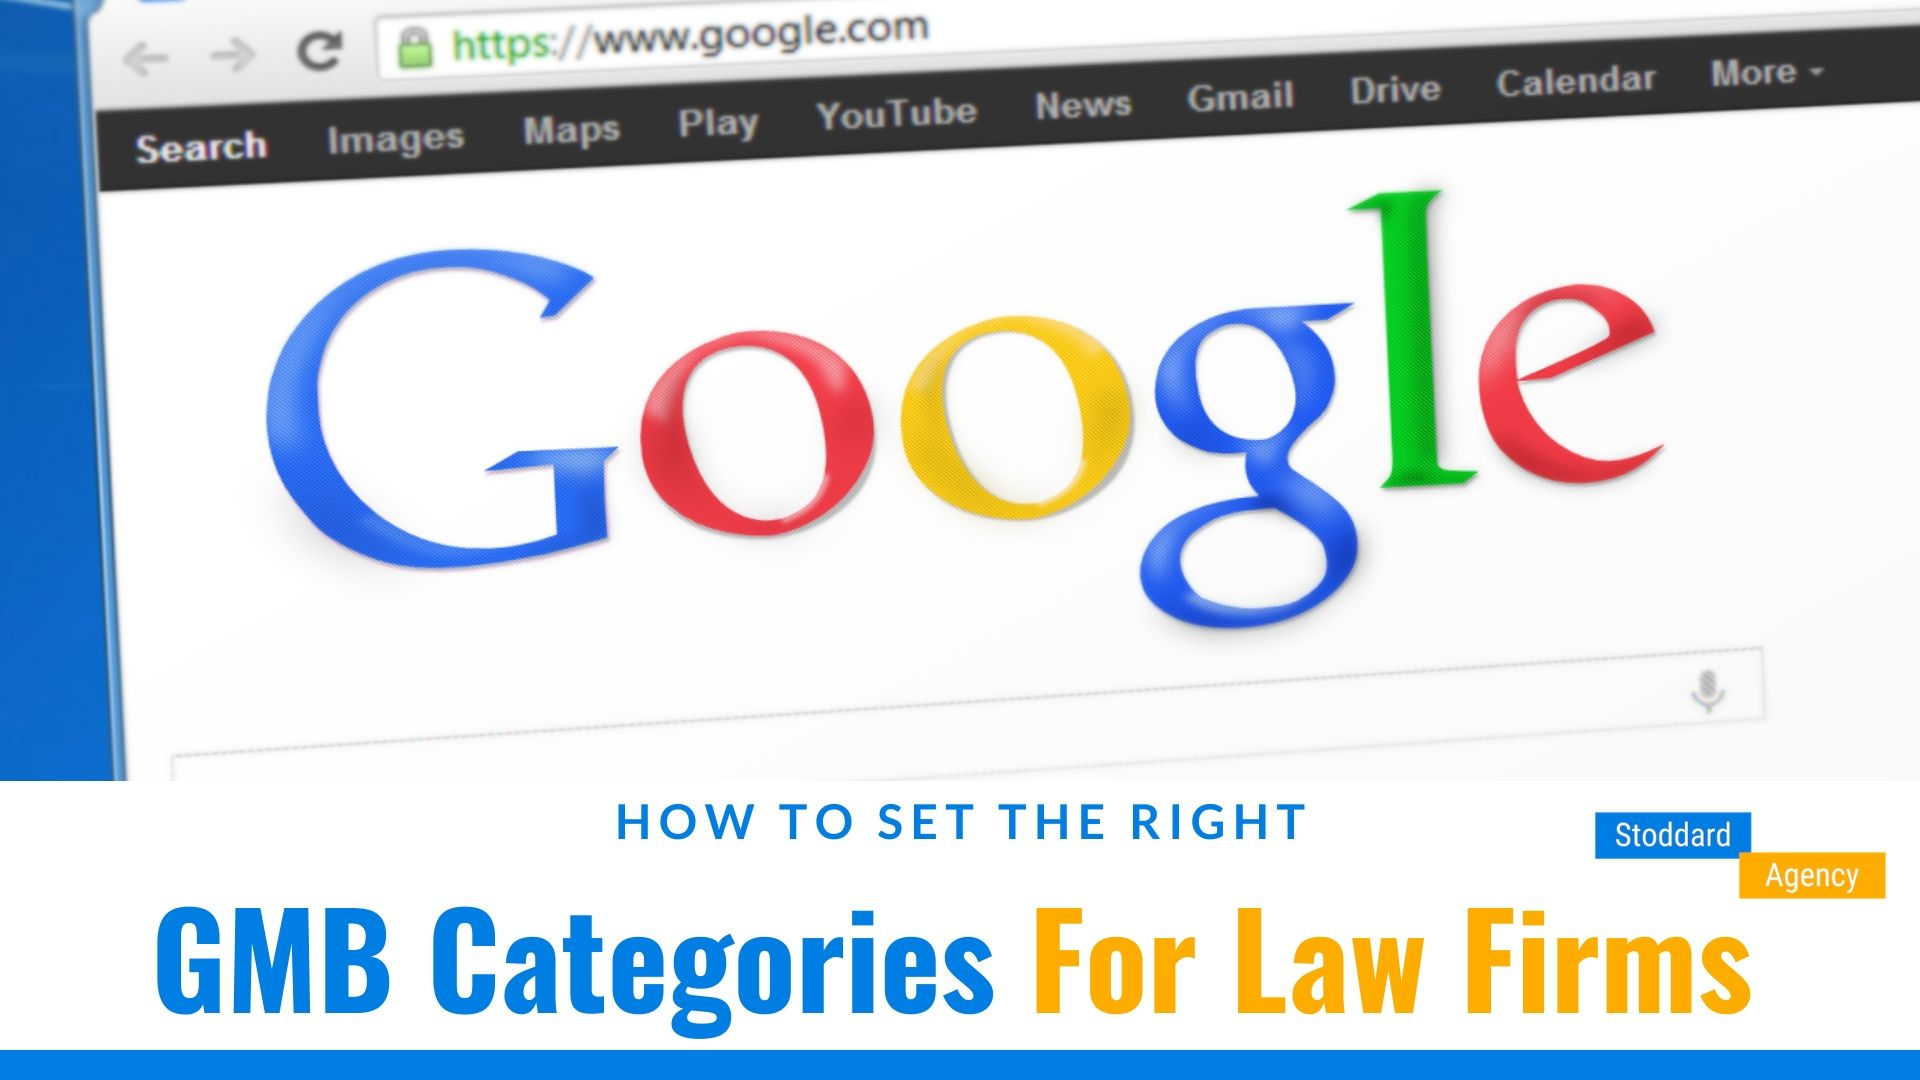 How To Set the Right GMB Categories Law Firms